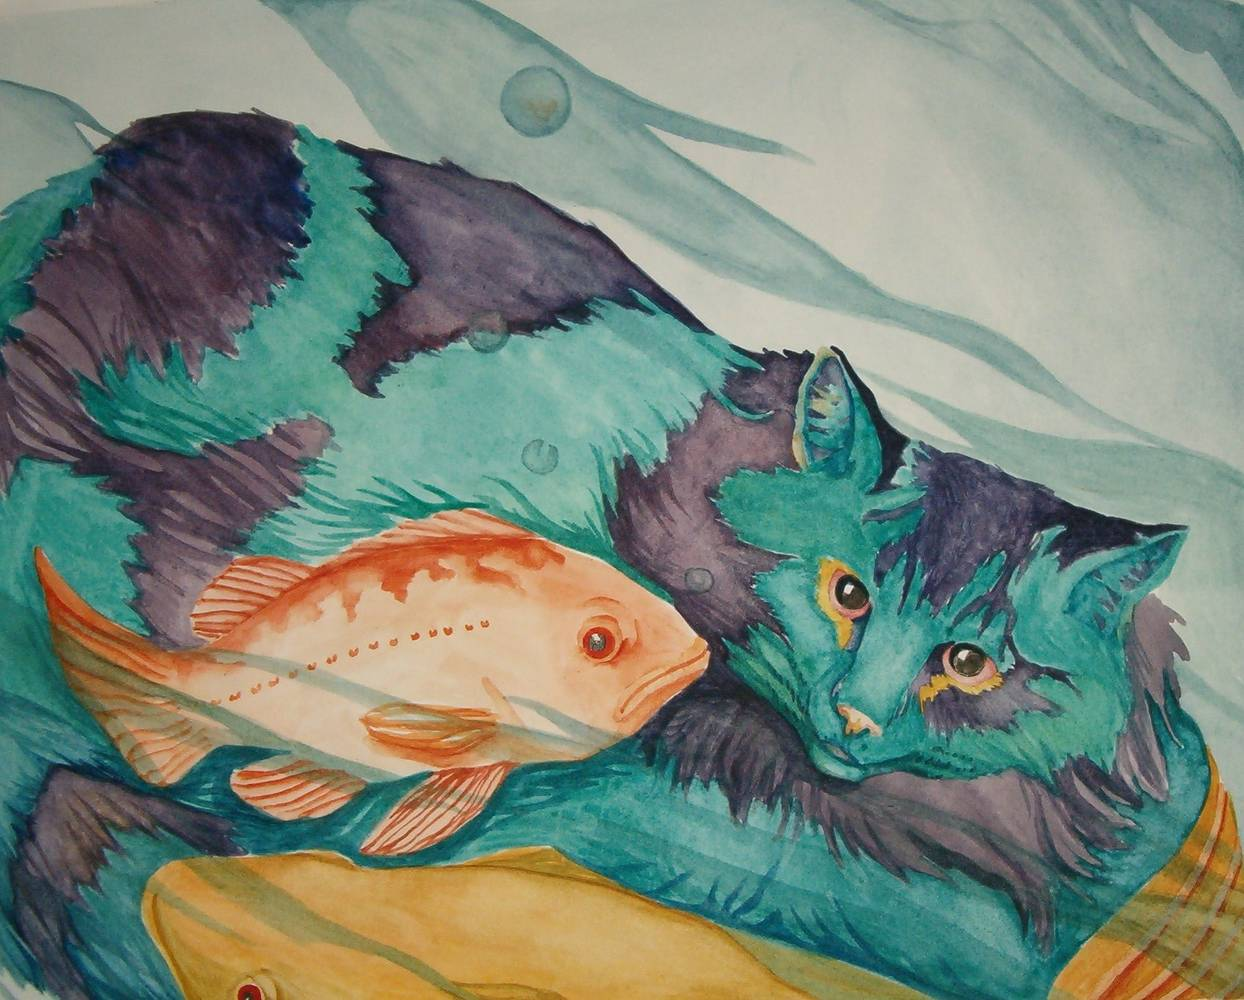 Acrylic painting cat's fishy dream by Claudia Stewart